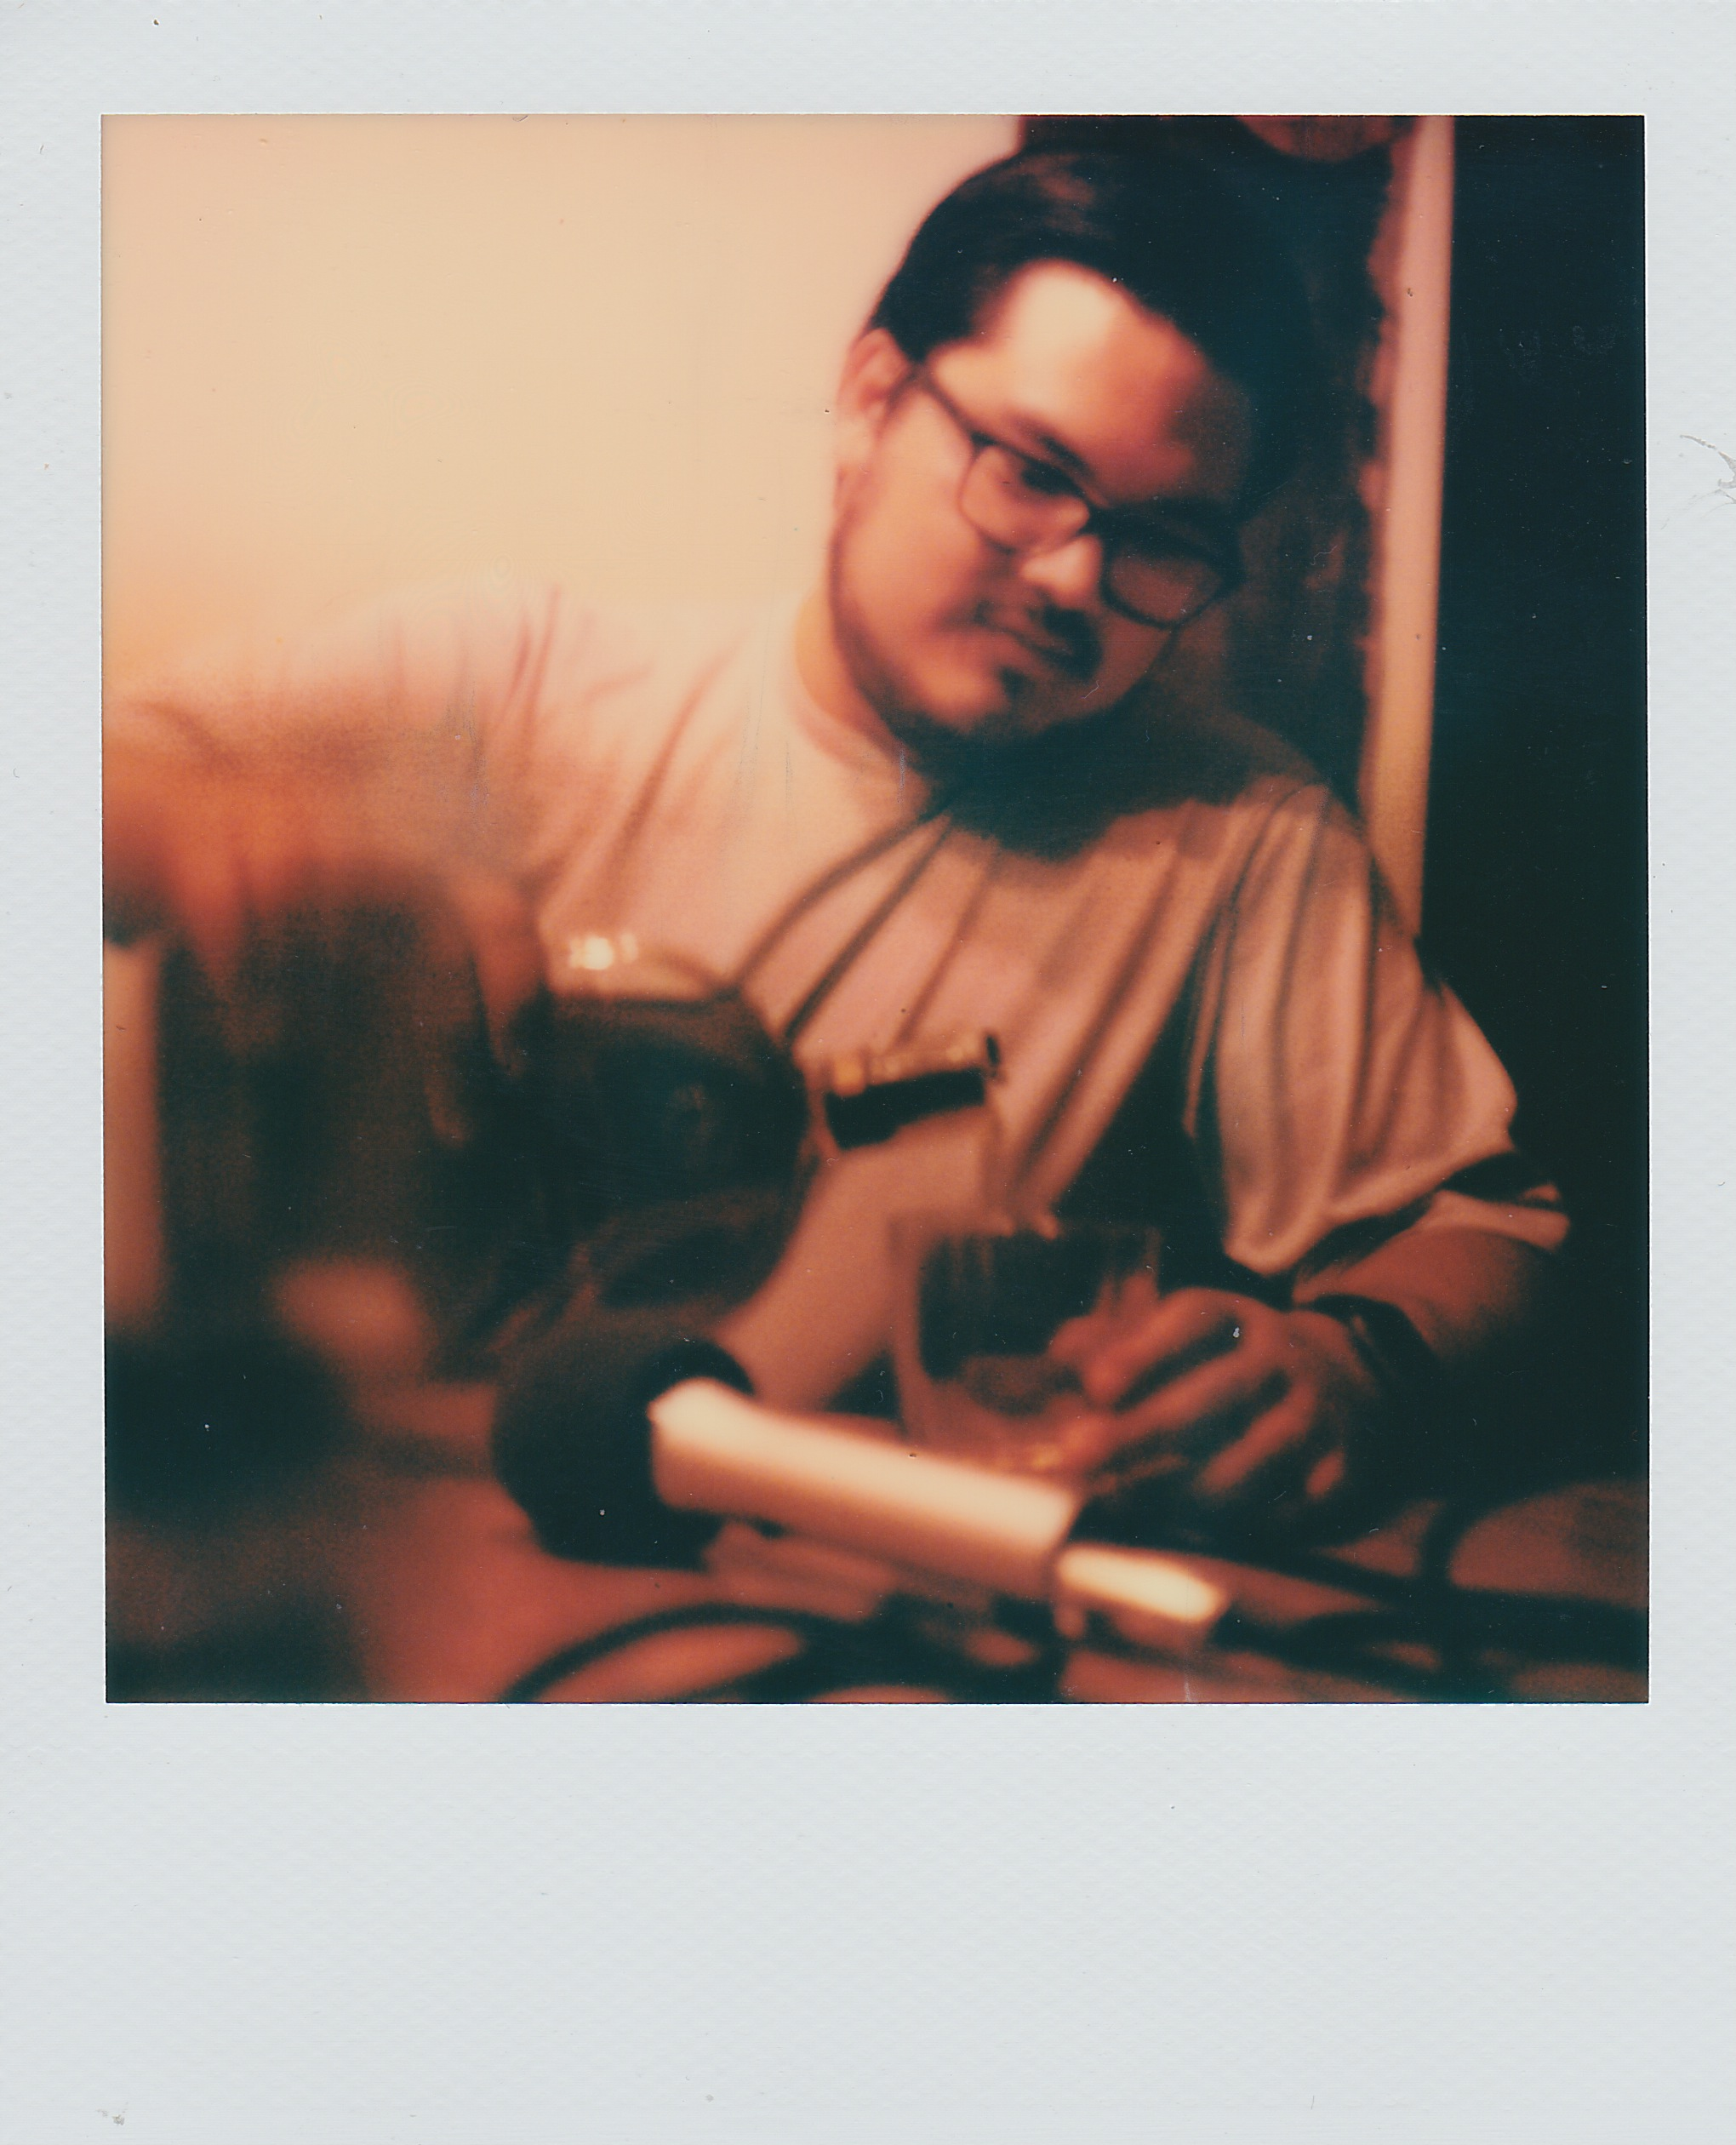 Podcast Polaroid of Greg Steele